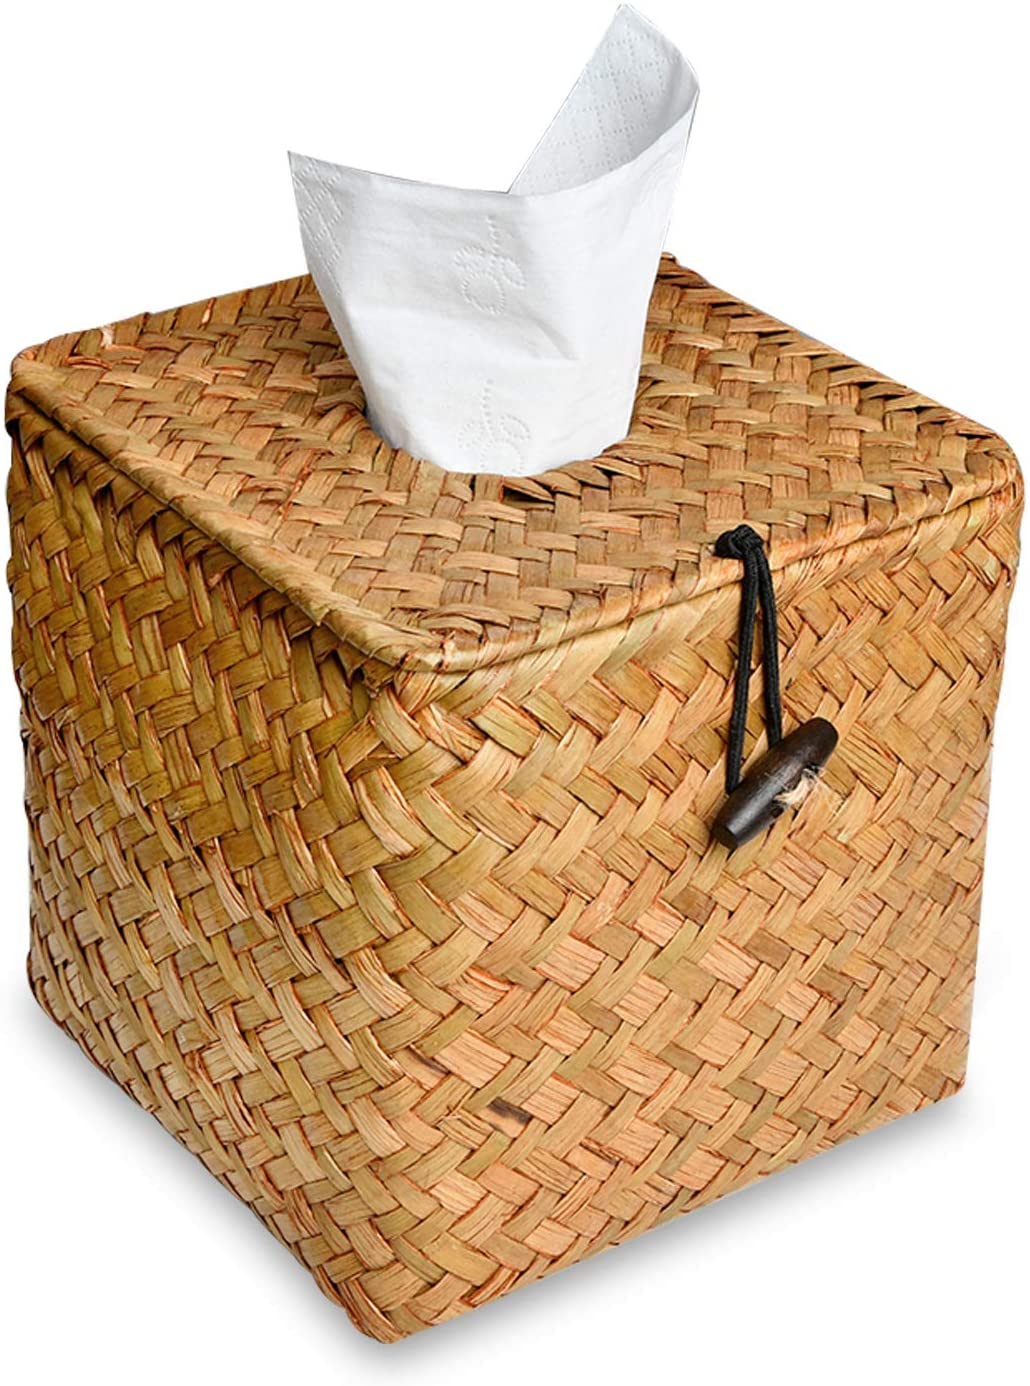 Supkiir Tissue Box Cover, Square Woven Decorative Facial Tissue Holder Pumping Paper Case Dispenser for Home Office Car